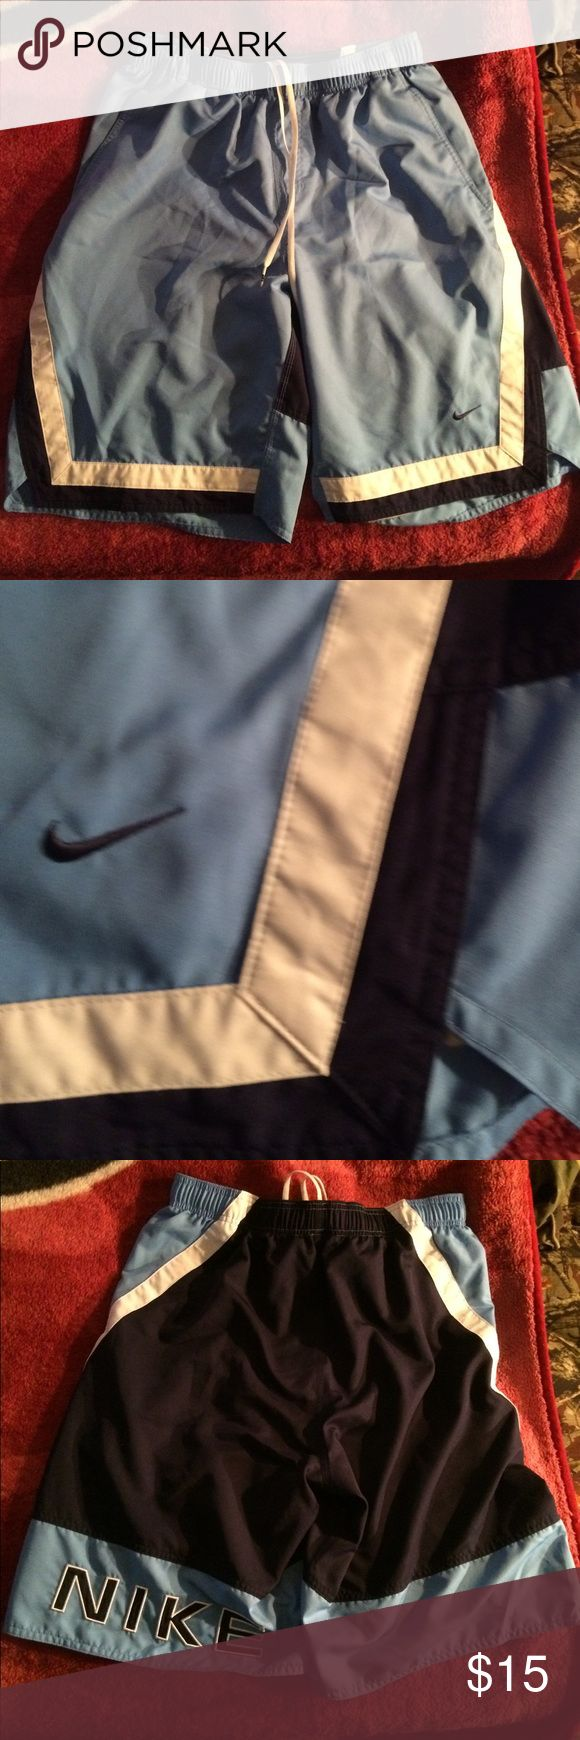 Nike swim trunks great condition XL Blue white and black Nike swim trunks no stains no rips or tears. In very good condition Nike Swim Swim Trunks